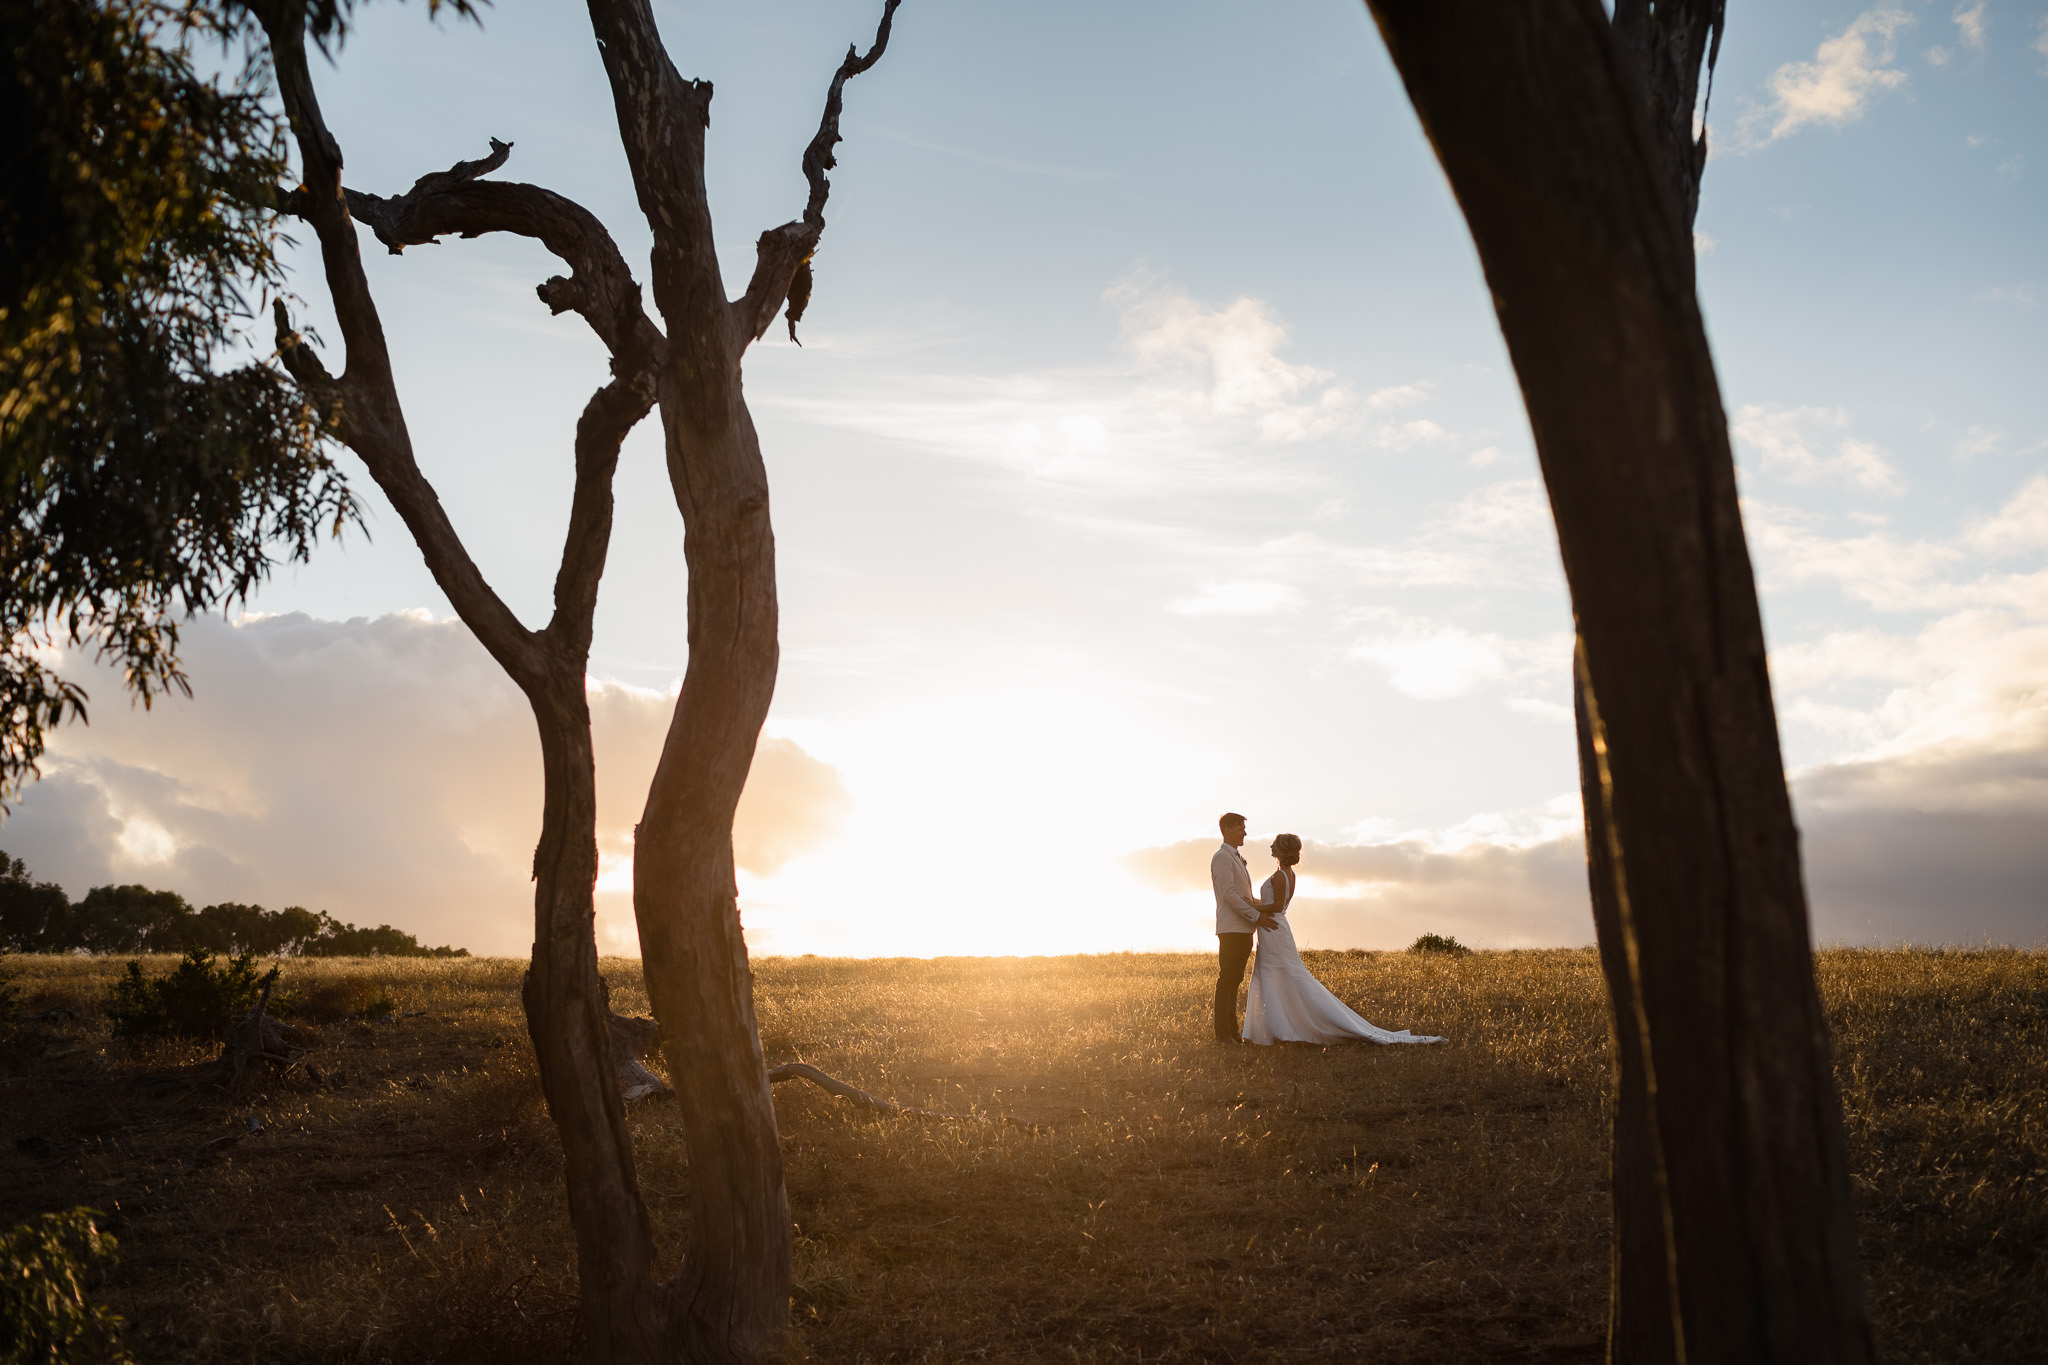 wedding photo of bride and groom in field of golden grass framed between dead trees in Yallingup at sunset